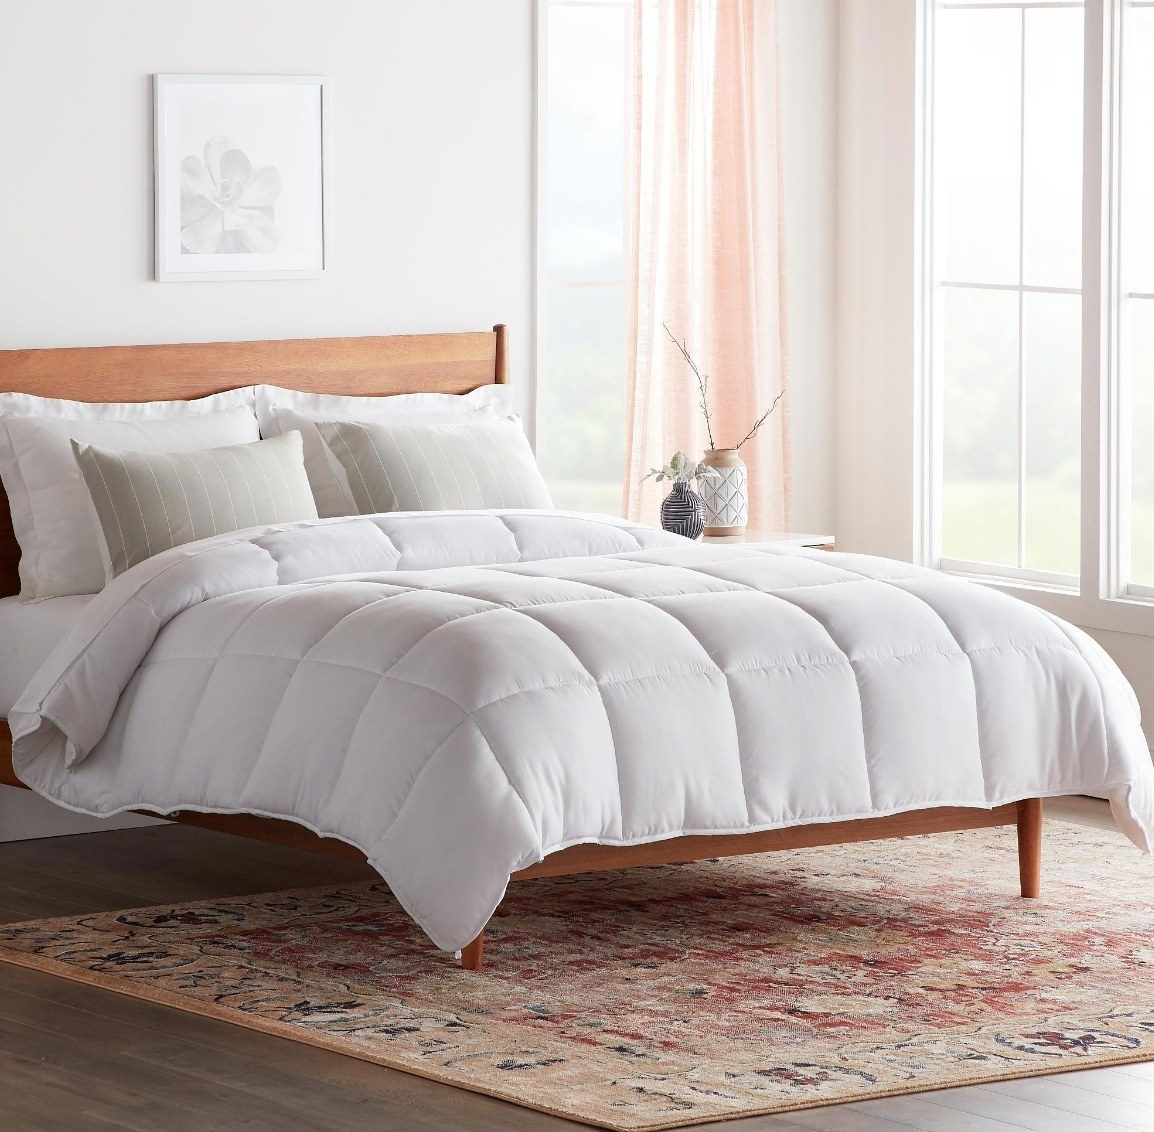 The hypoallergenic down comforter in queen size